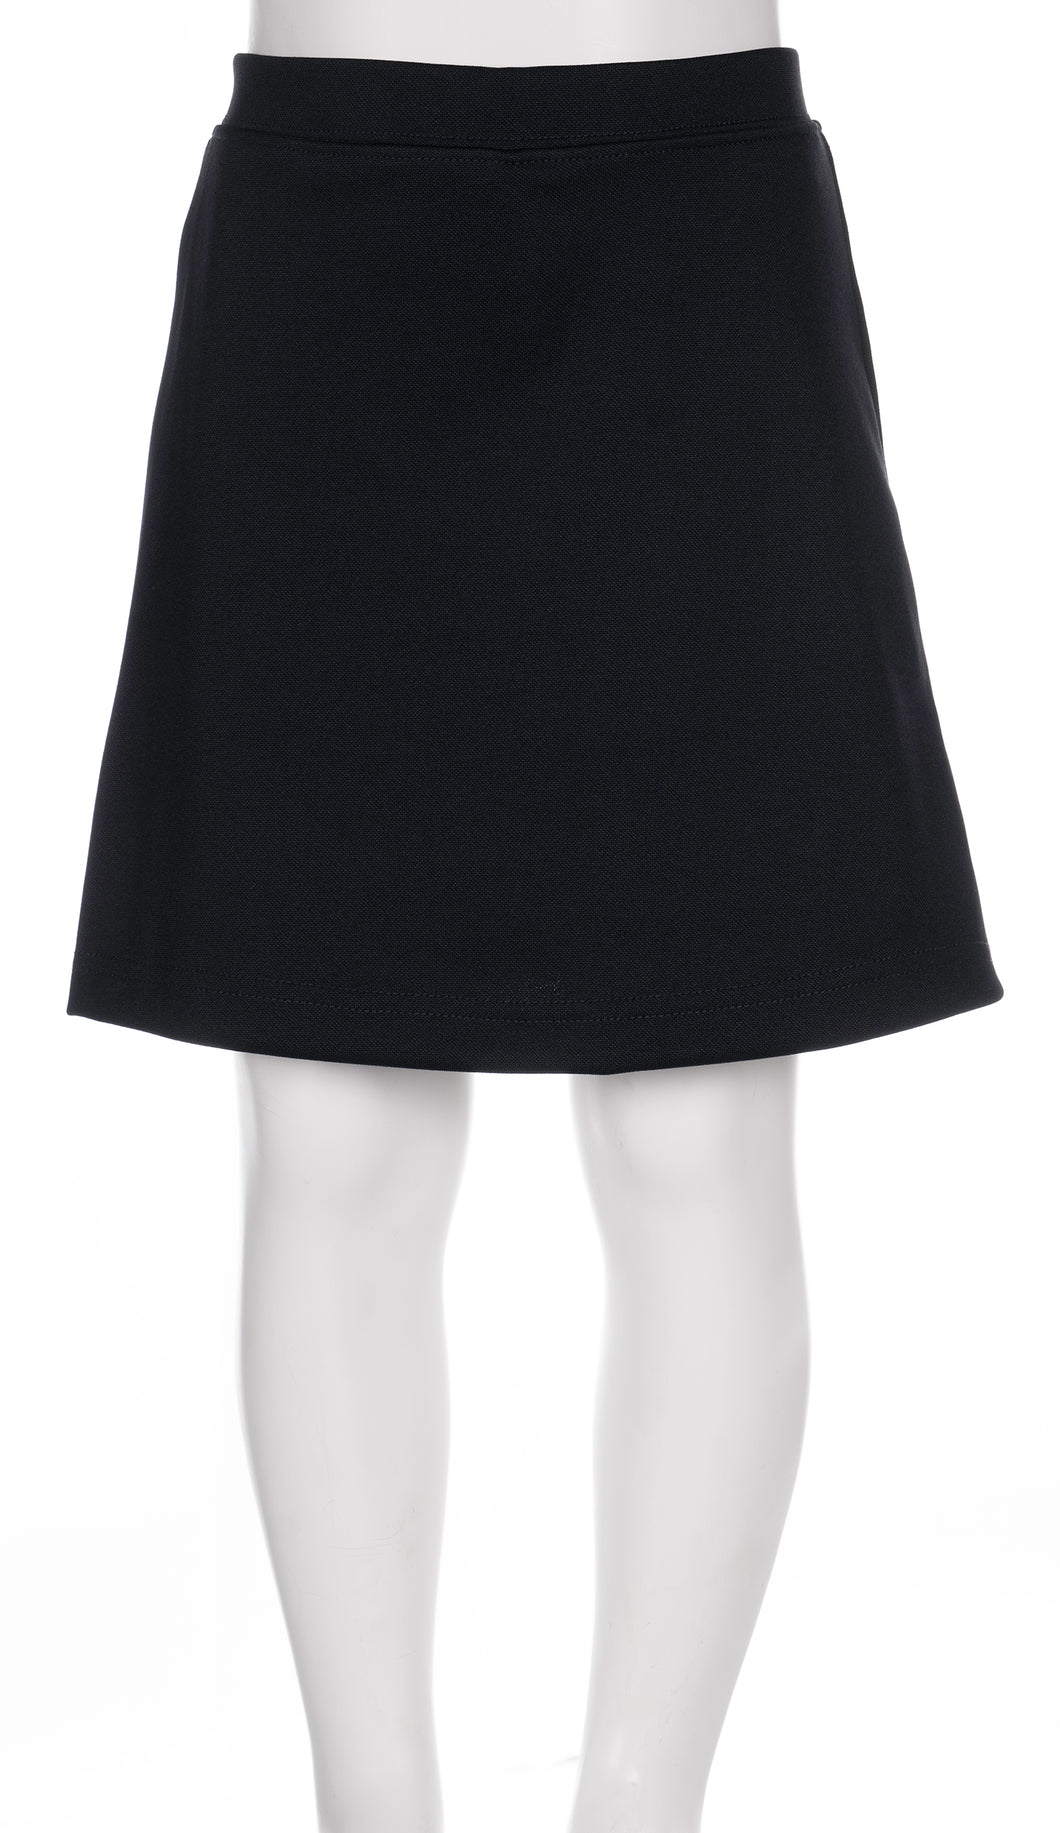 Riverhead School - Girls A-Line Skort